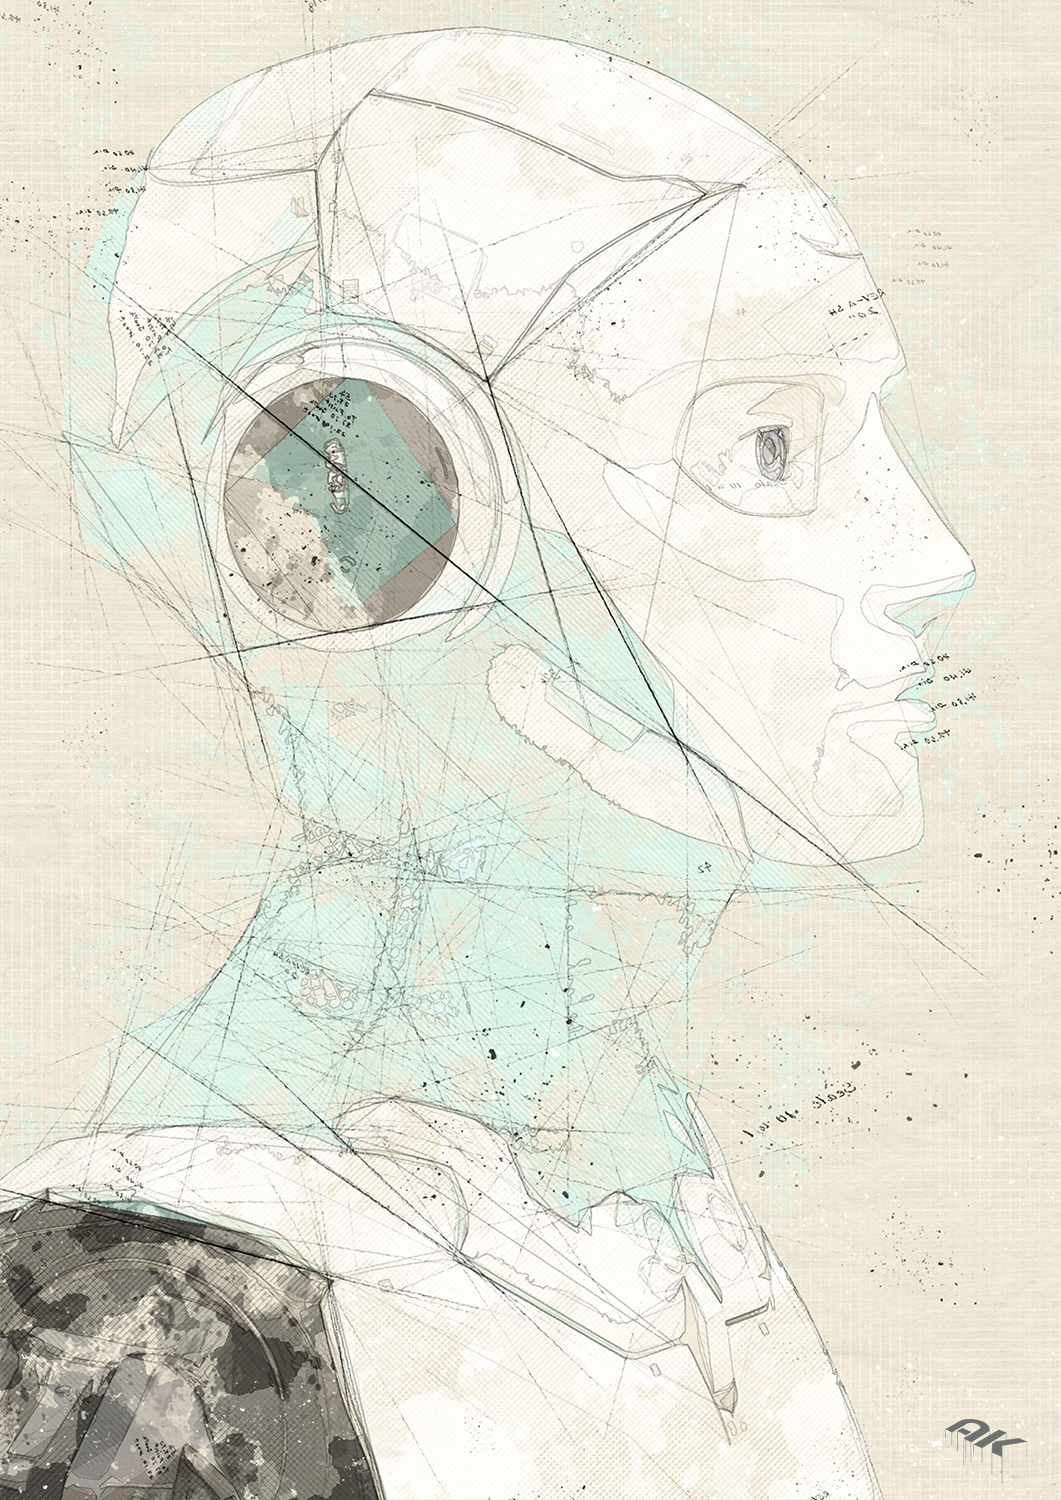 cyborg-robot-drawing-16-copyright-andrew-knutt